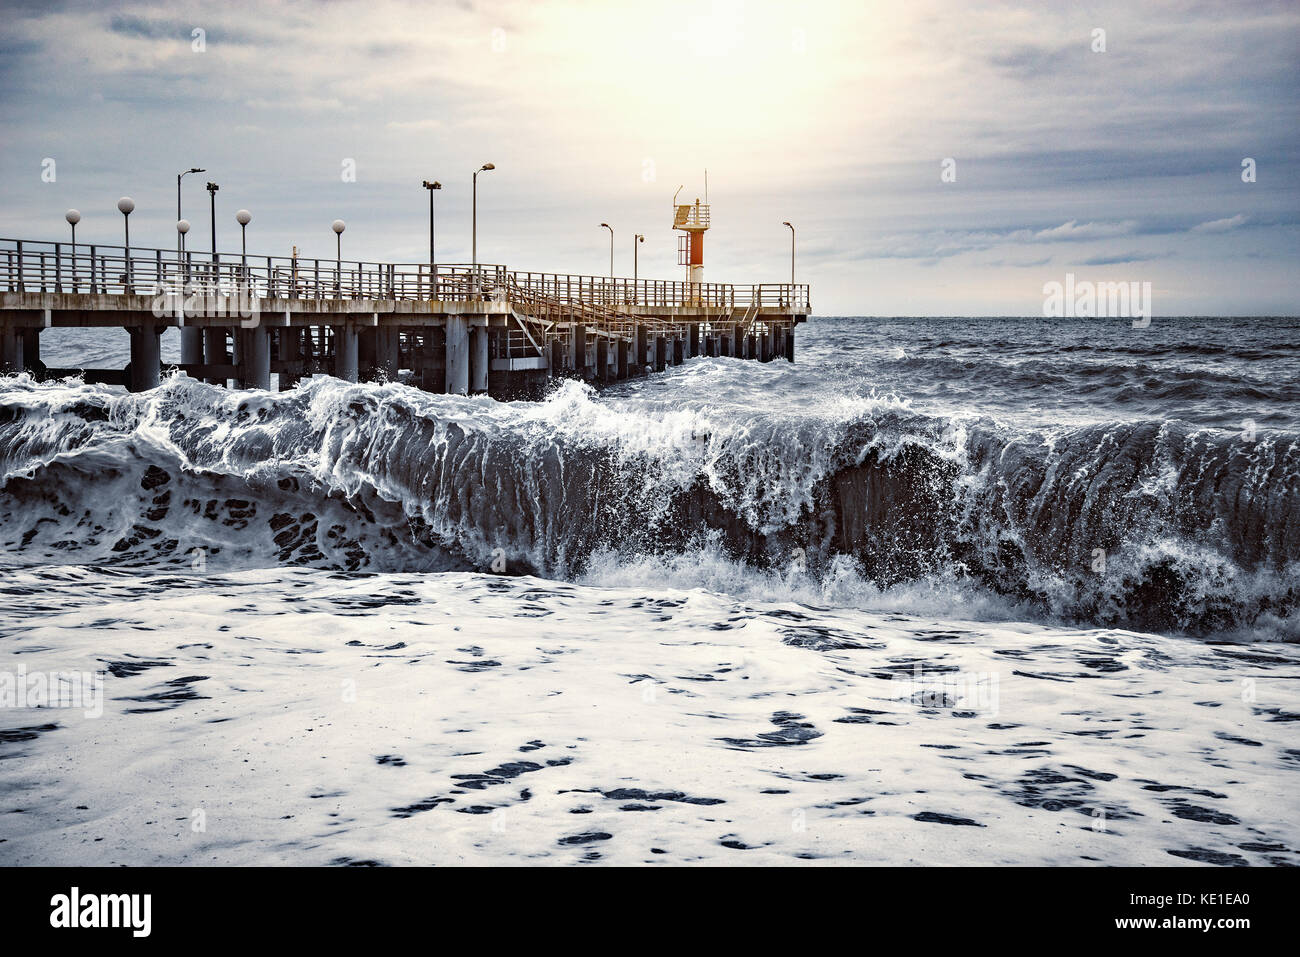 View of the pier. - Stock Image